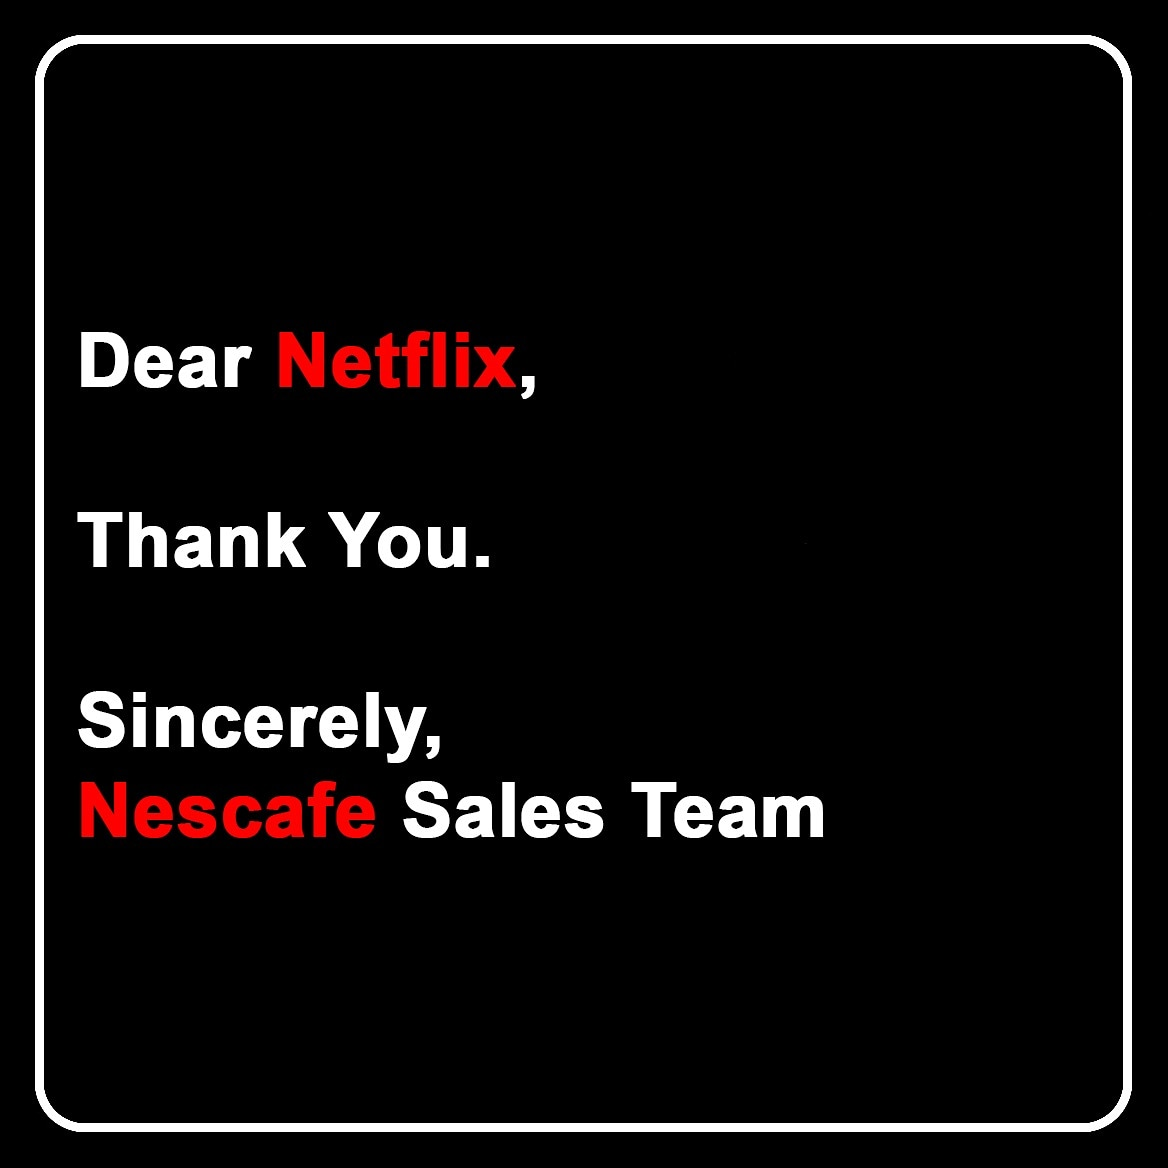 Which other brand should compliment other brands? #netflix #netflixmemes #netflixindia #nescafe #printad #thankyou #sales #Marketing #digitalmarketing #marketingonline #marketingstrategy #marketingagency #contentmarketing #content #tuesday #today #postoftheday #bigbrandtheory